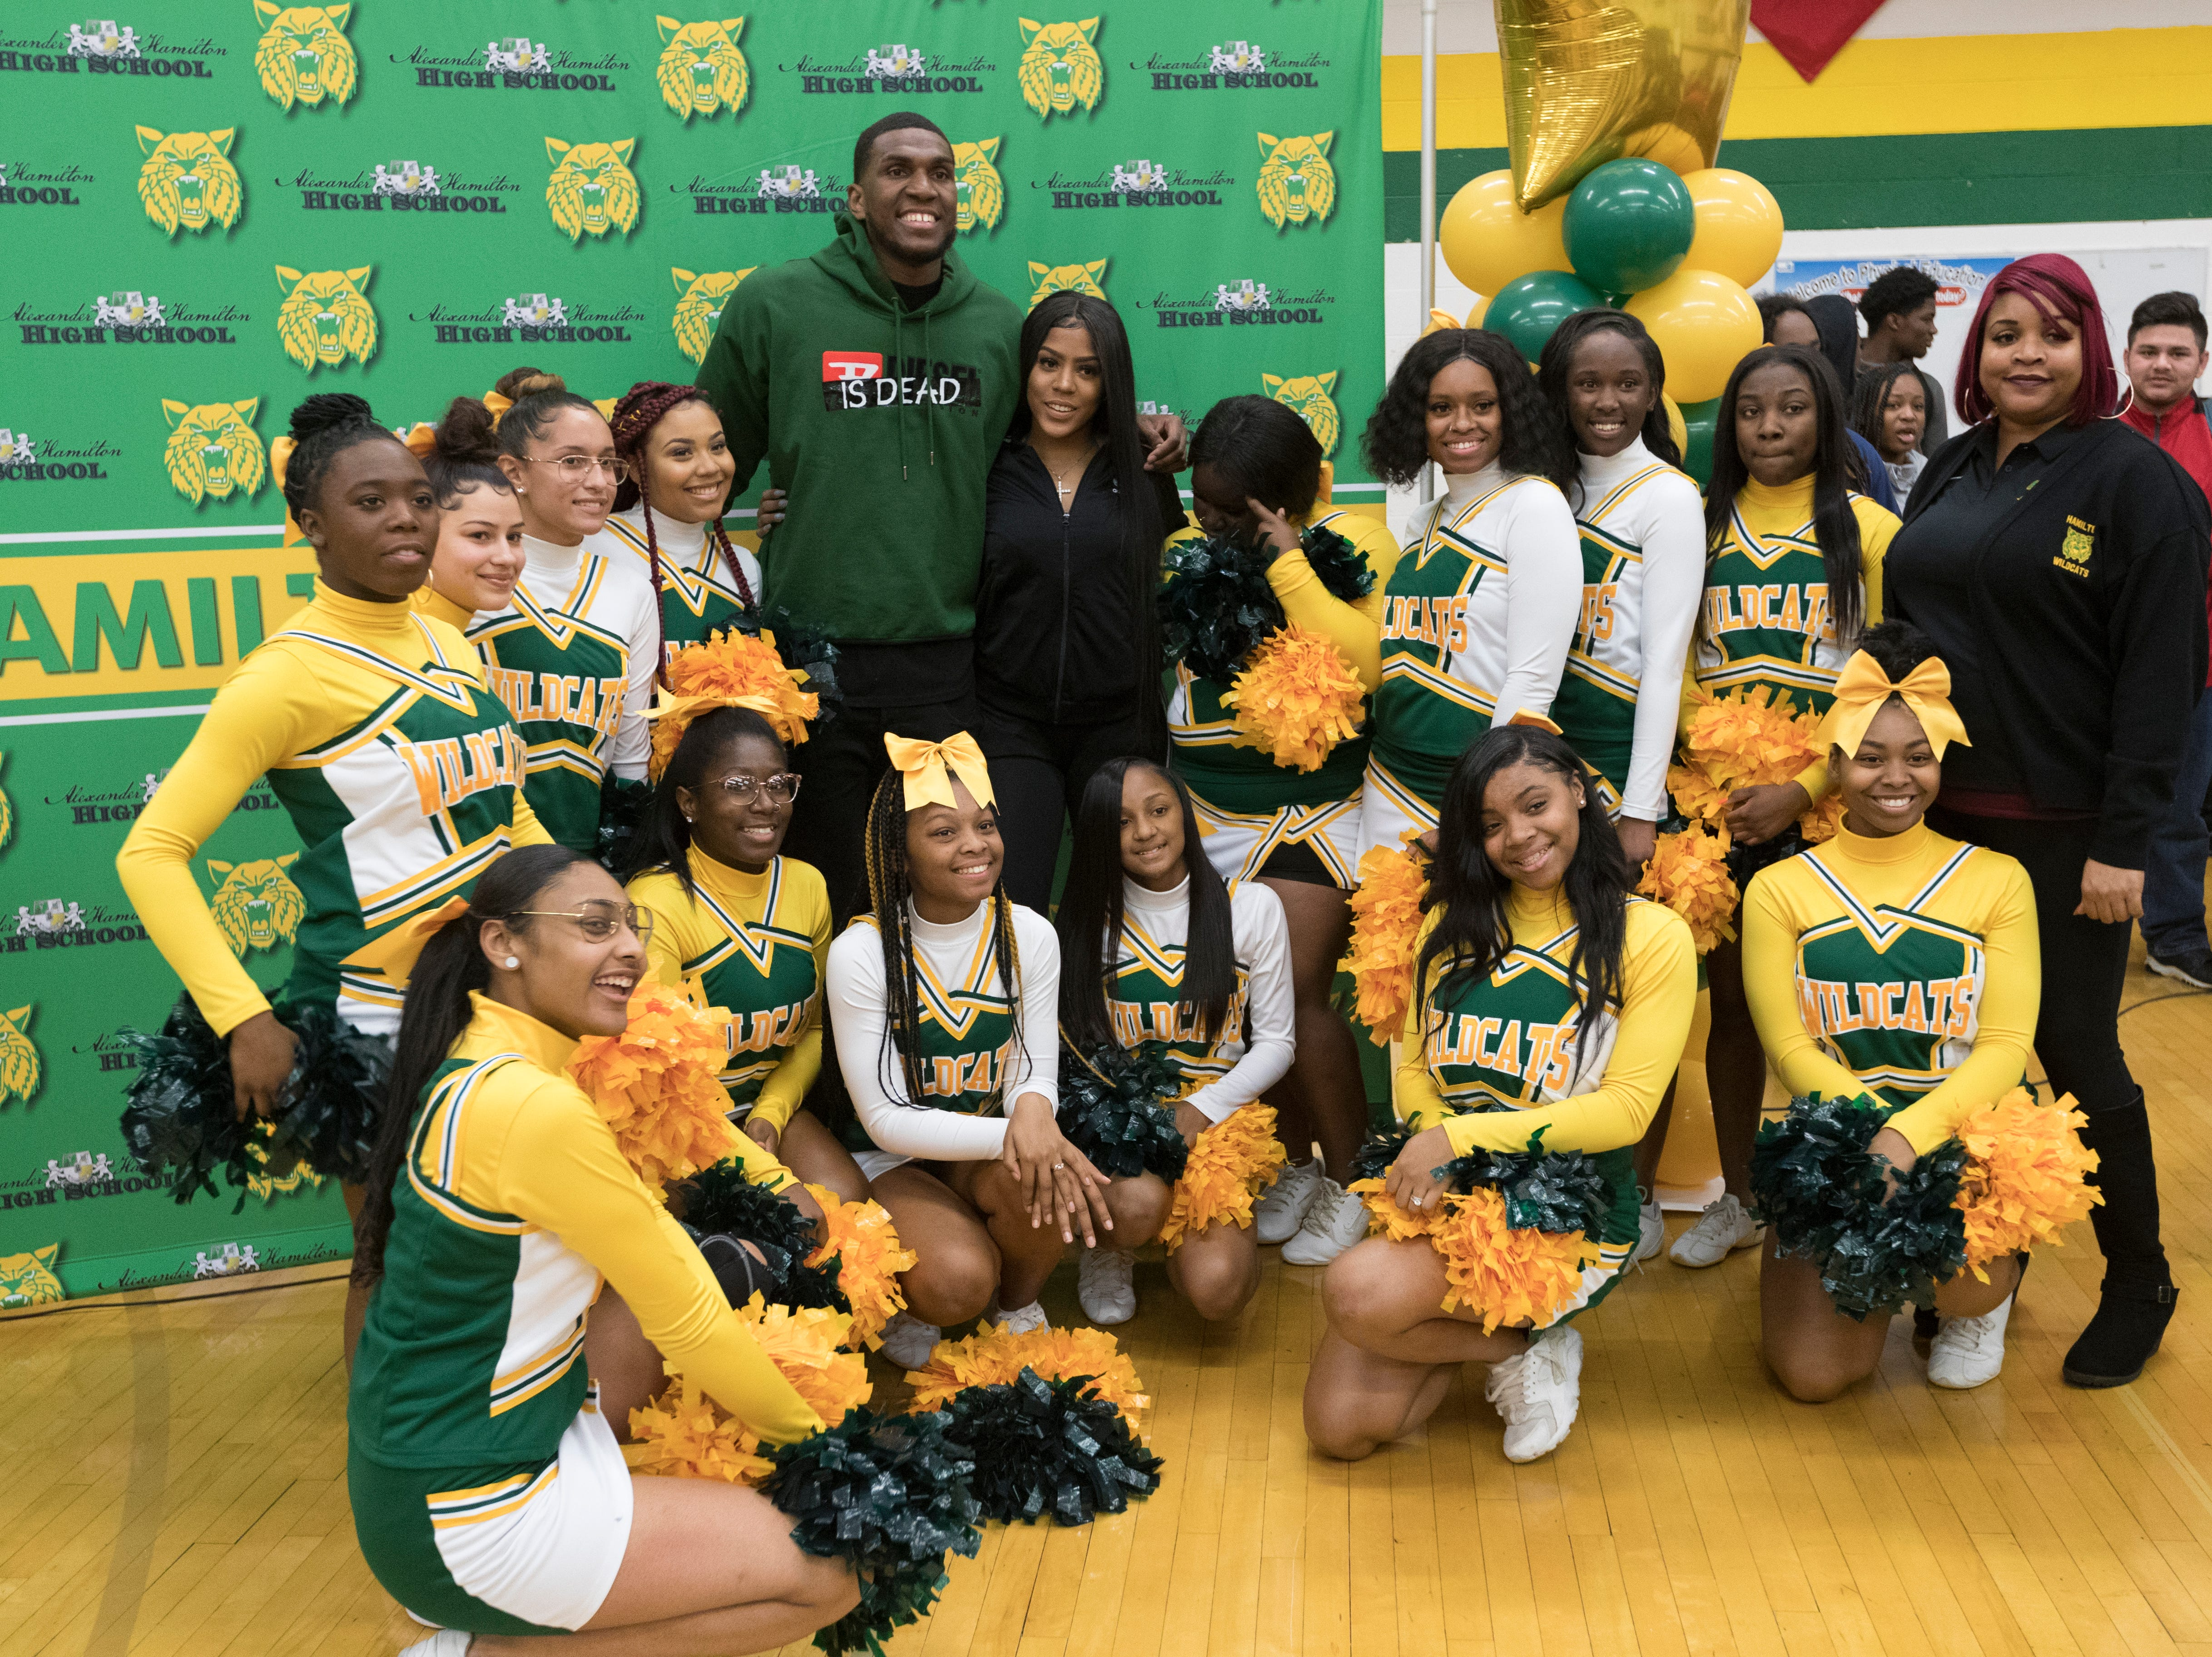 Golden State Warrior center Kevon Looney poses with high school cheerleaders while taking part in a ceremony where his jersey is retired  Thursday, December 6, 2018 at Hamilton High School.